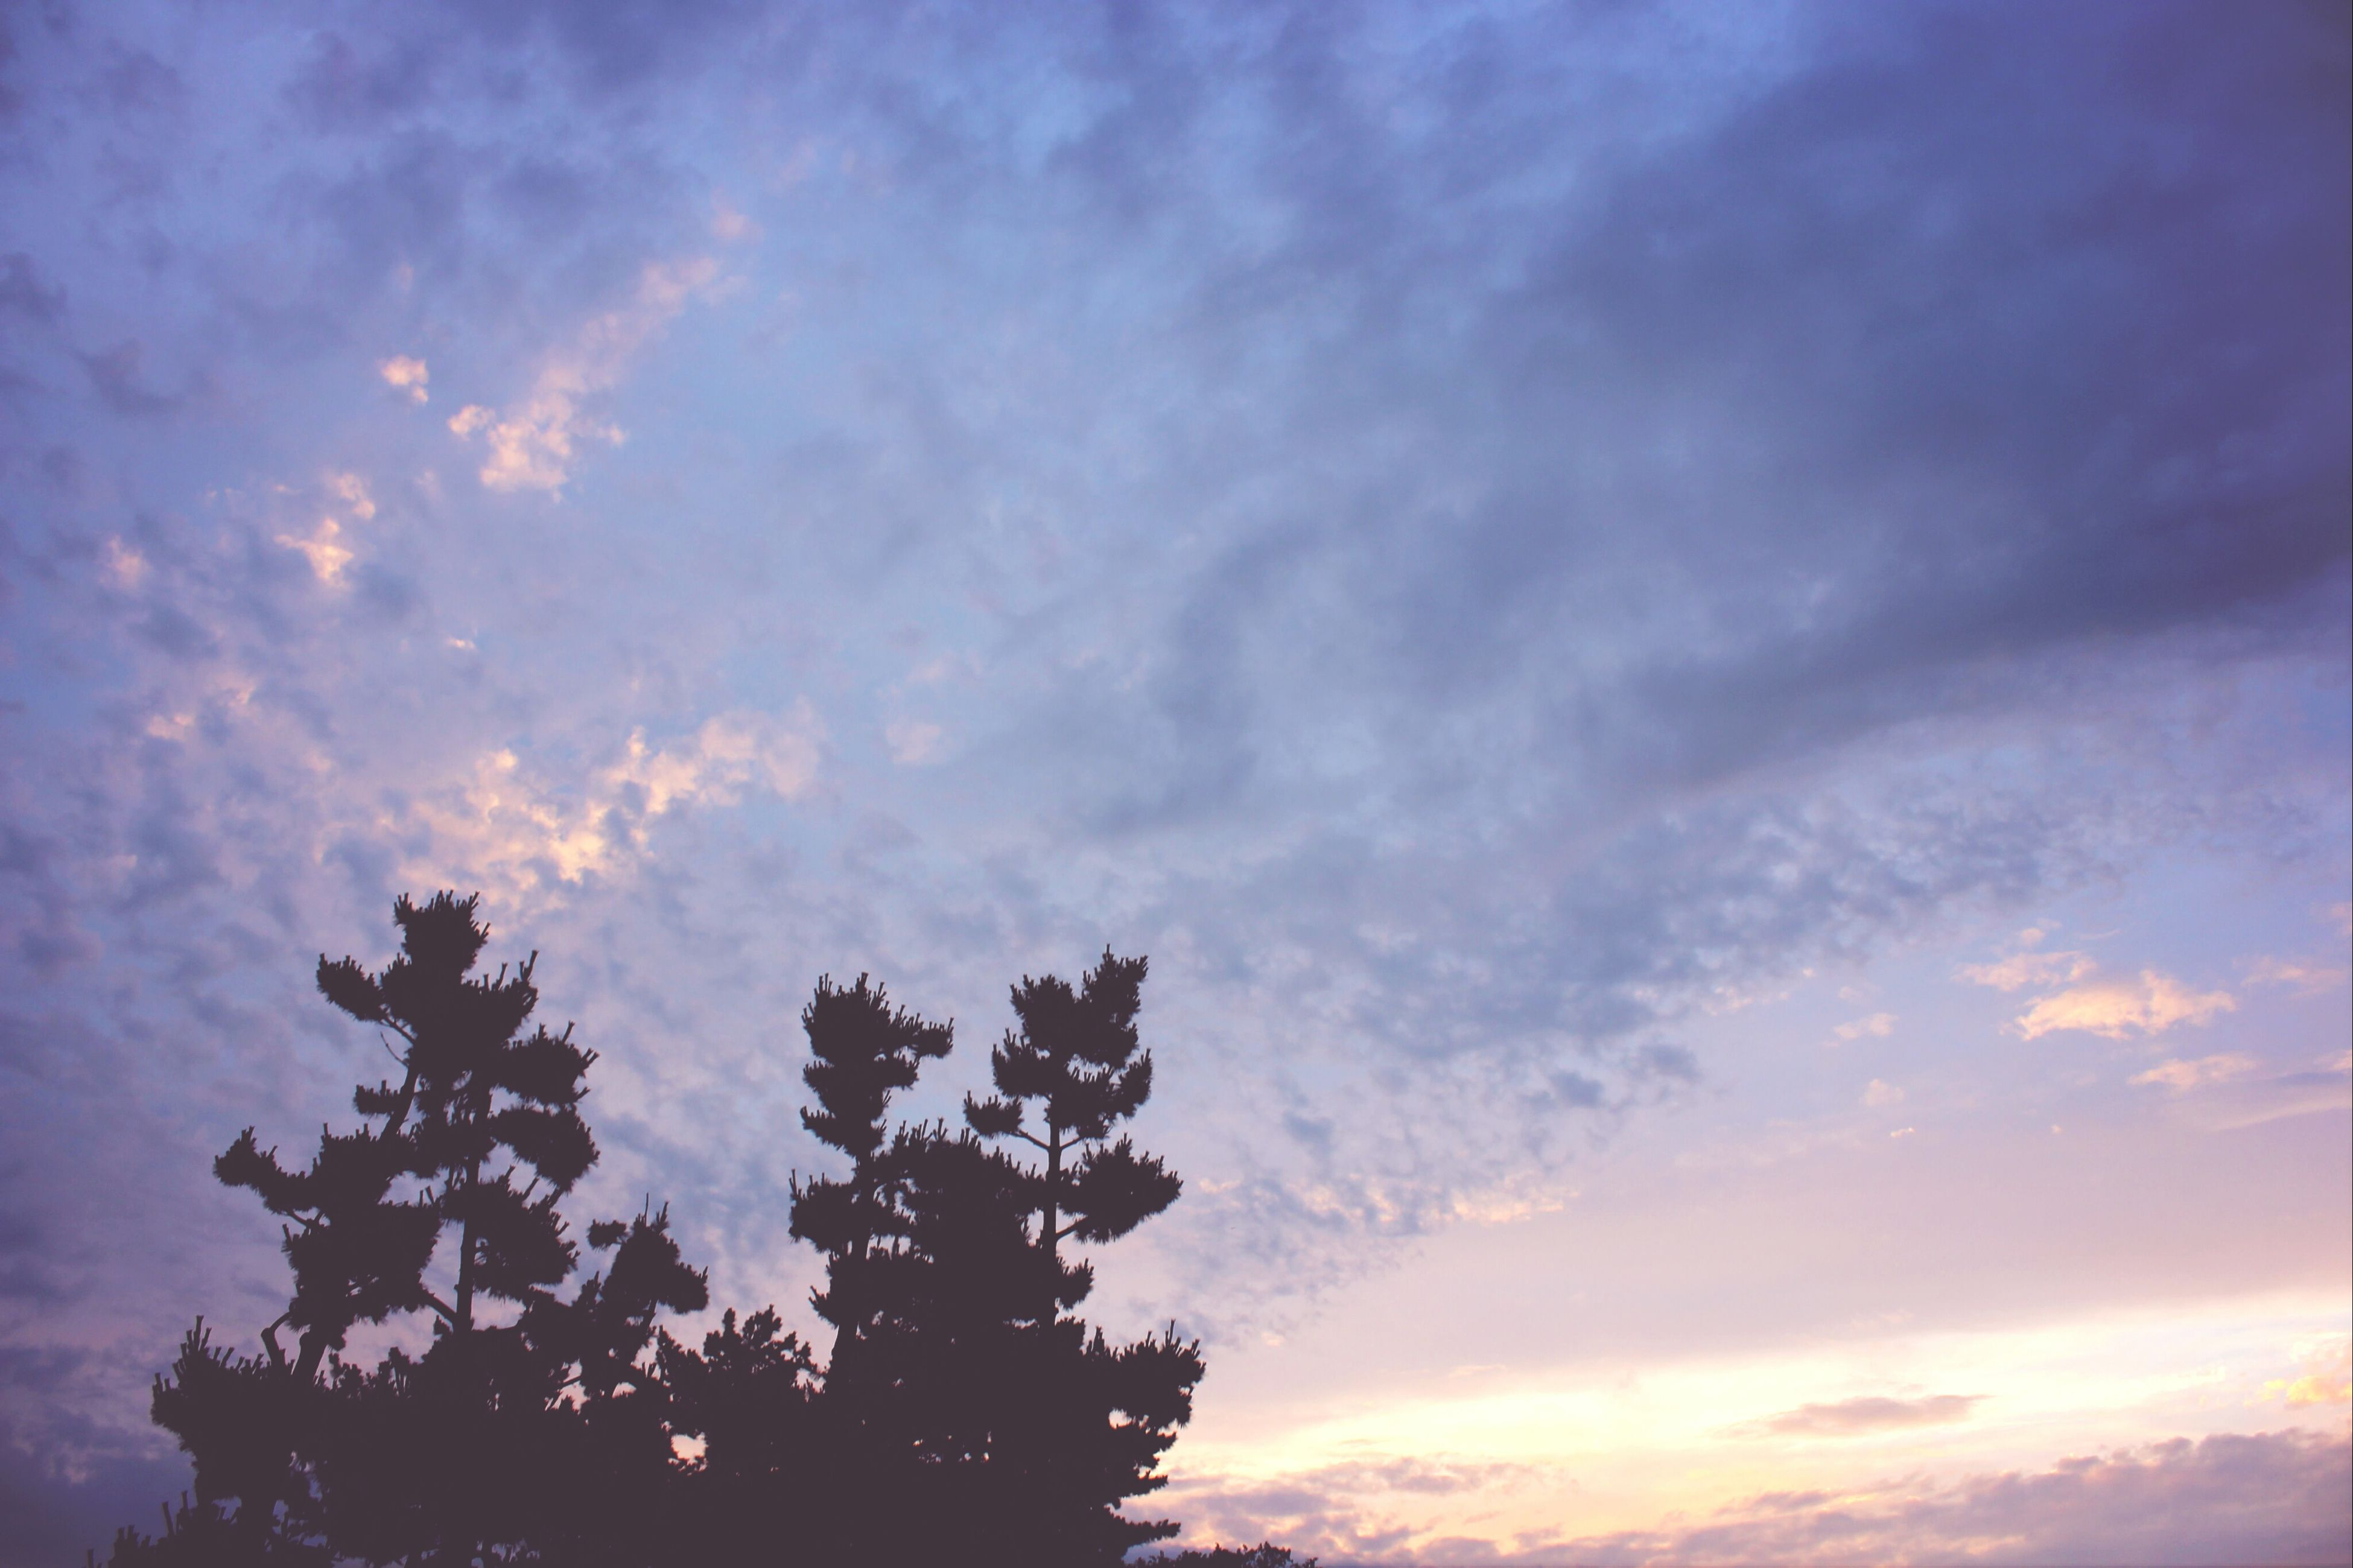 sky, low angle view, cloud - sky, silhouette, beauty in nature, tranquility, tree, cloudy, sunset, scenics, nature, tranquil scene, cloud, dramatic sky, idyllic, outdoors, cloudscape, no people, weather, dusk